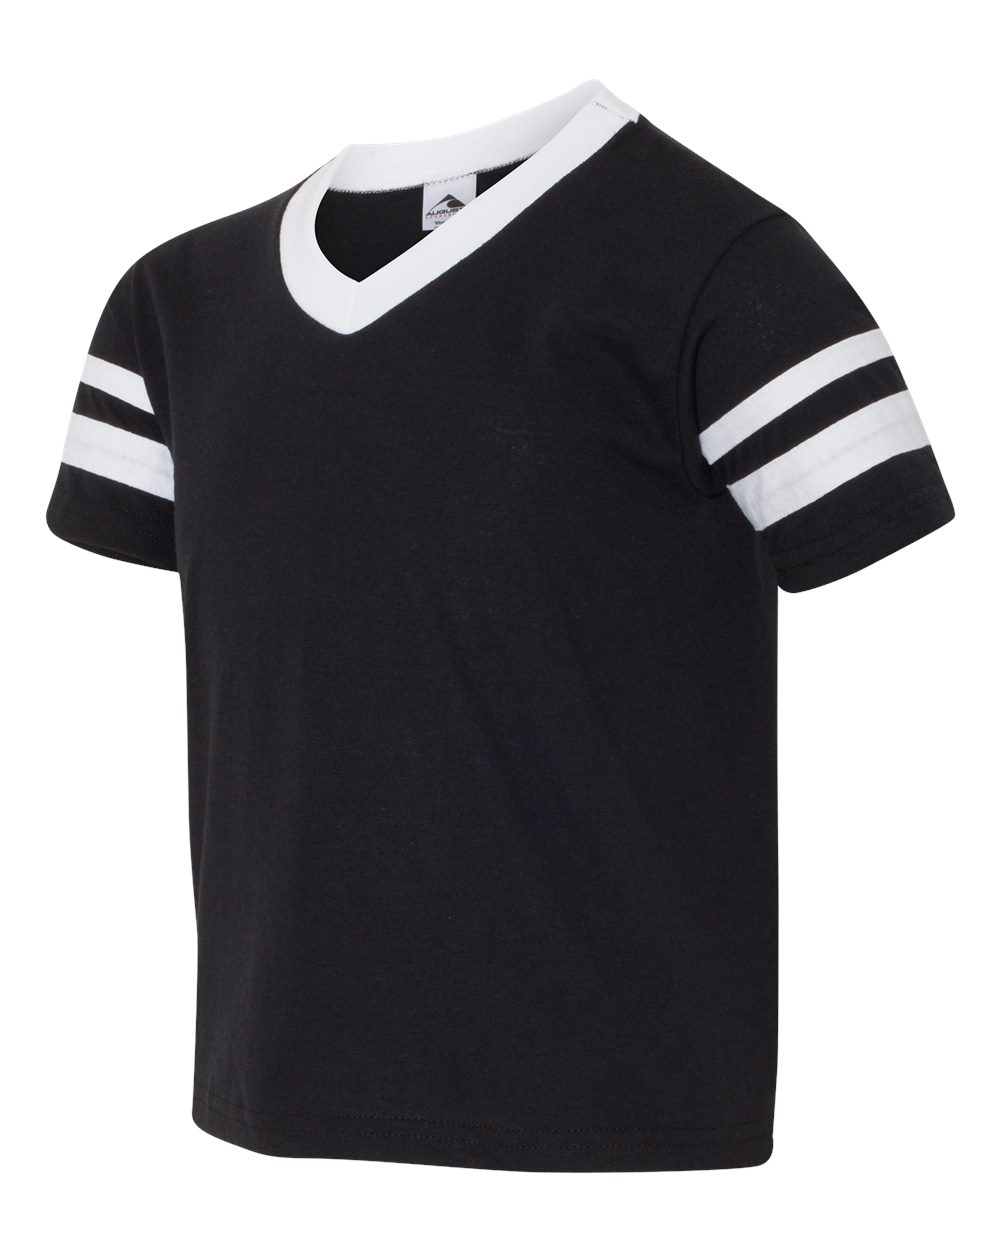 Augusta Sportswear 361 - Youth V-Neck Jersey with Striped Sleeves